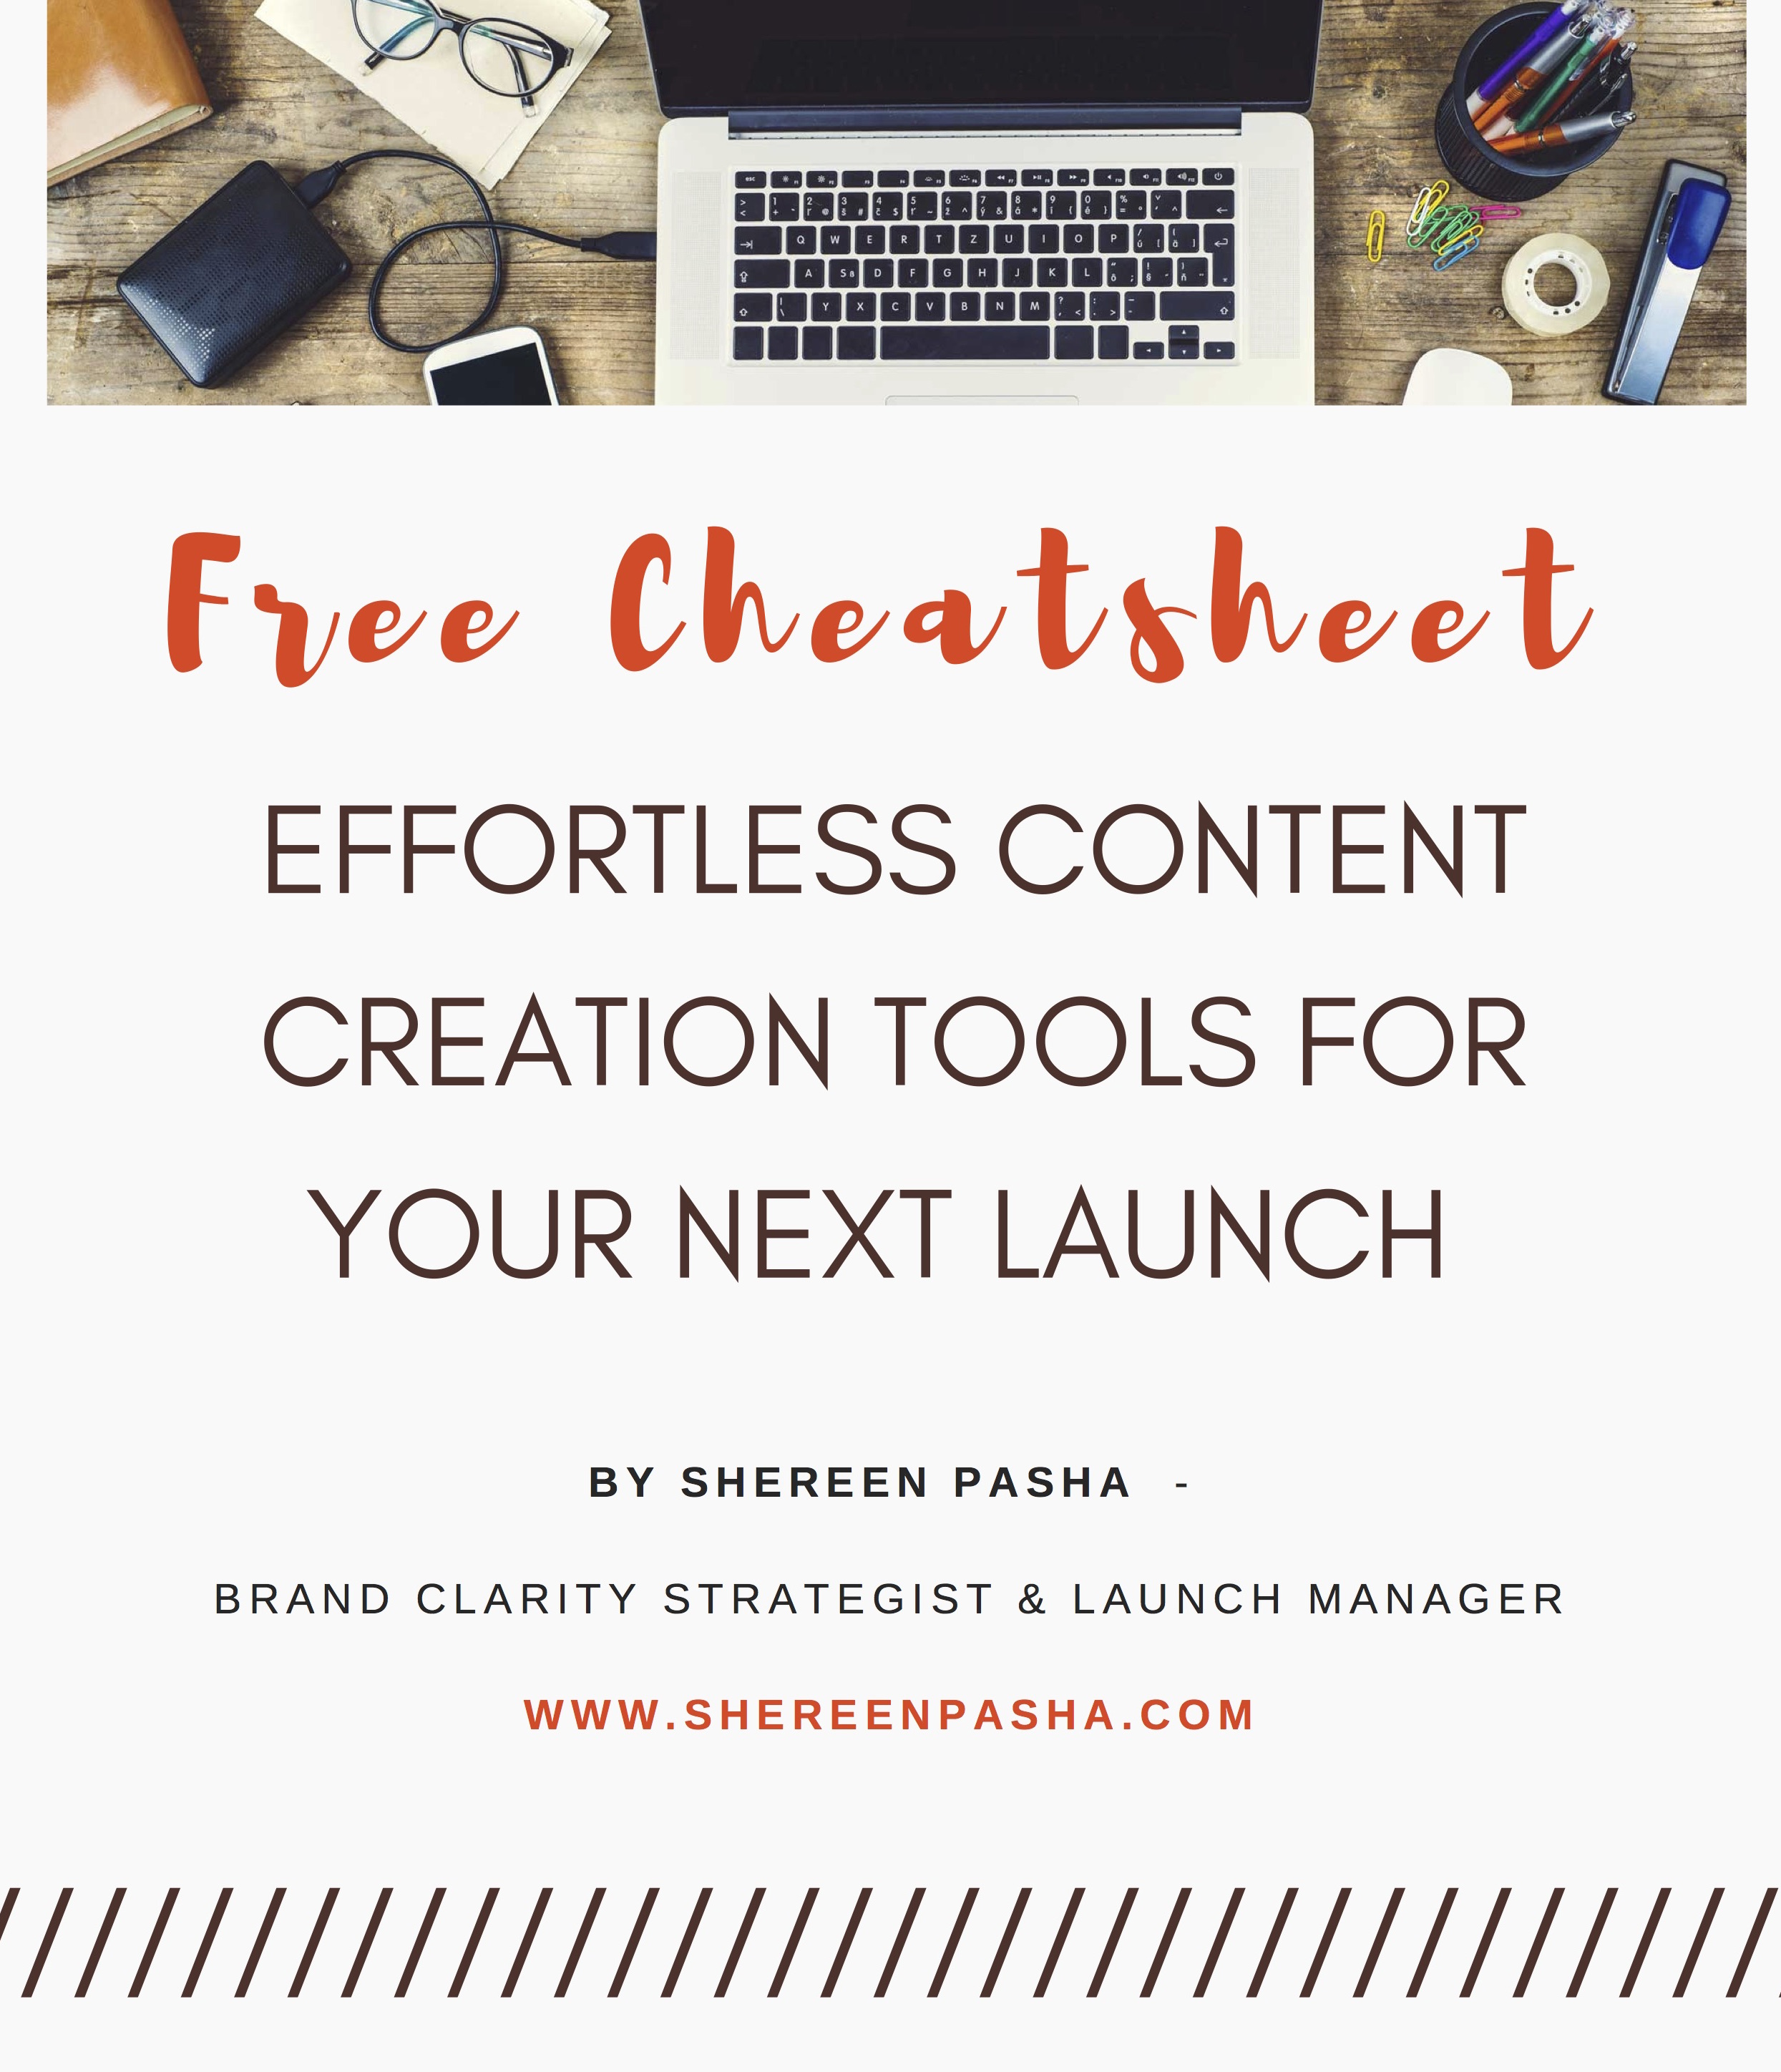 effortless-content-tools-for-launch.jpg